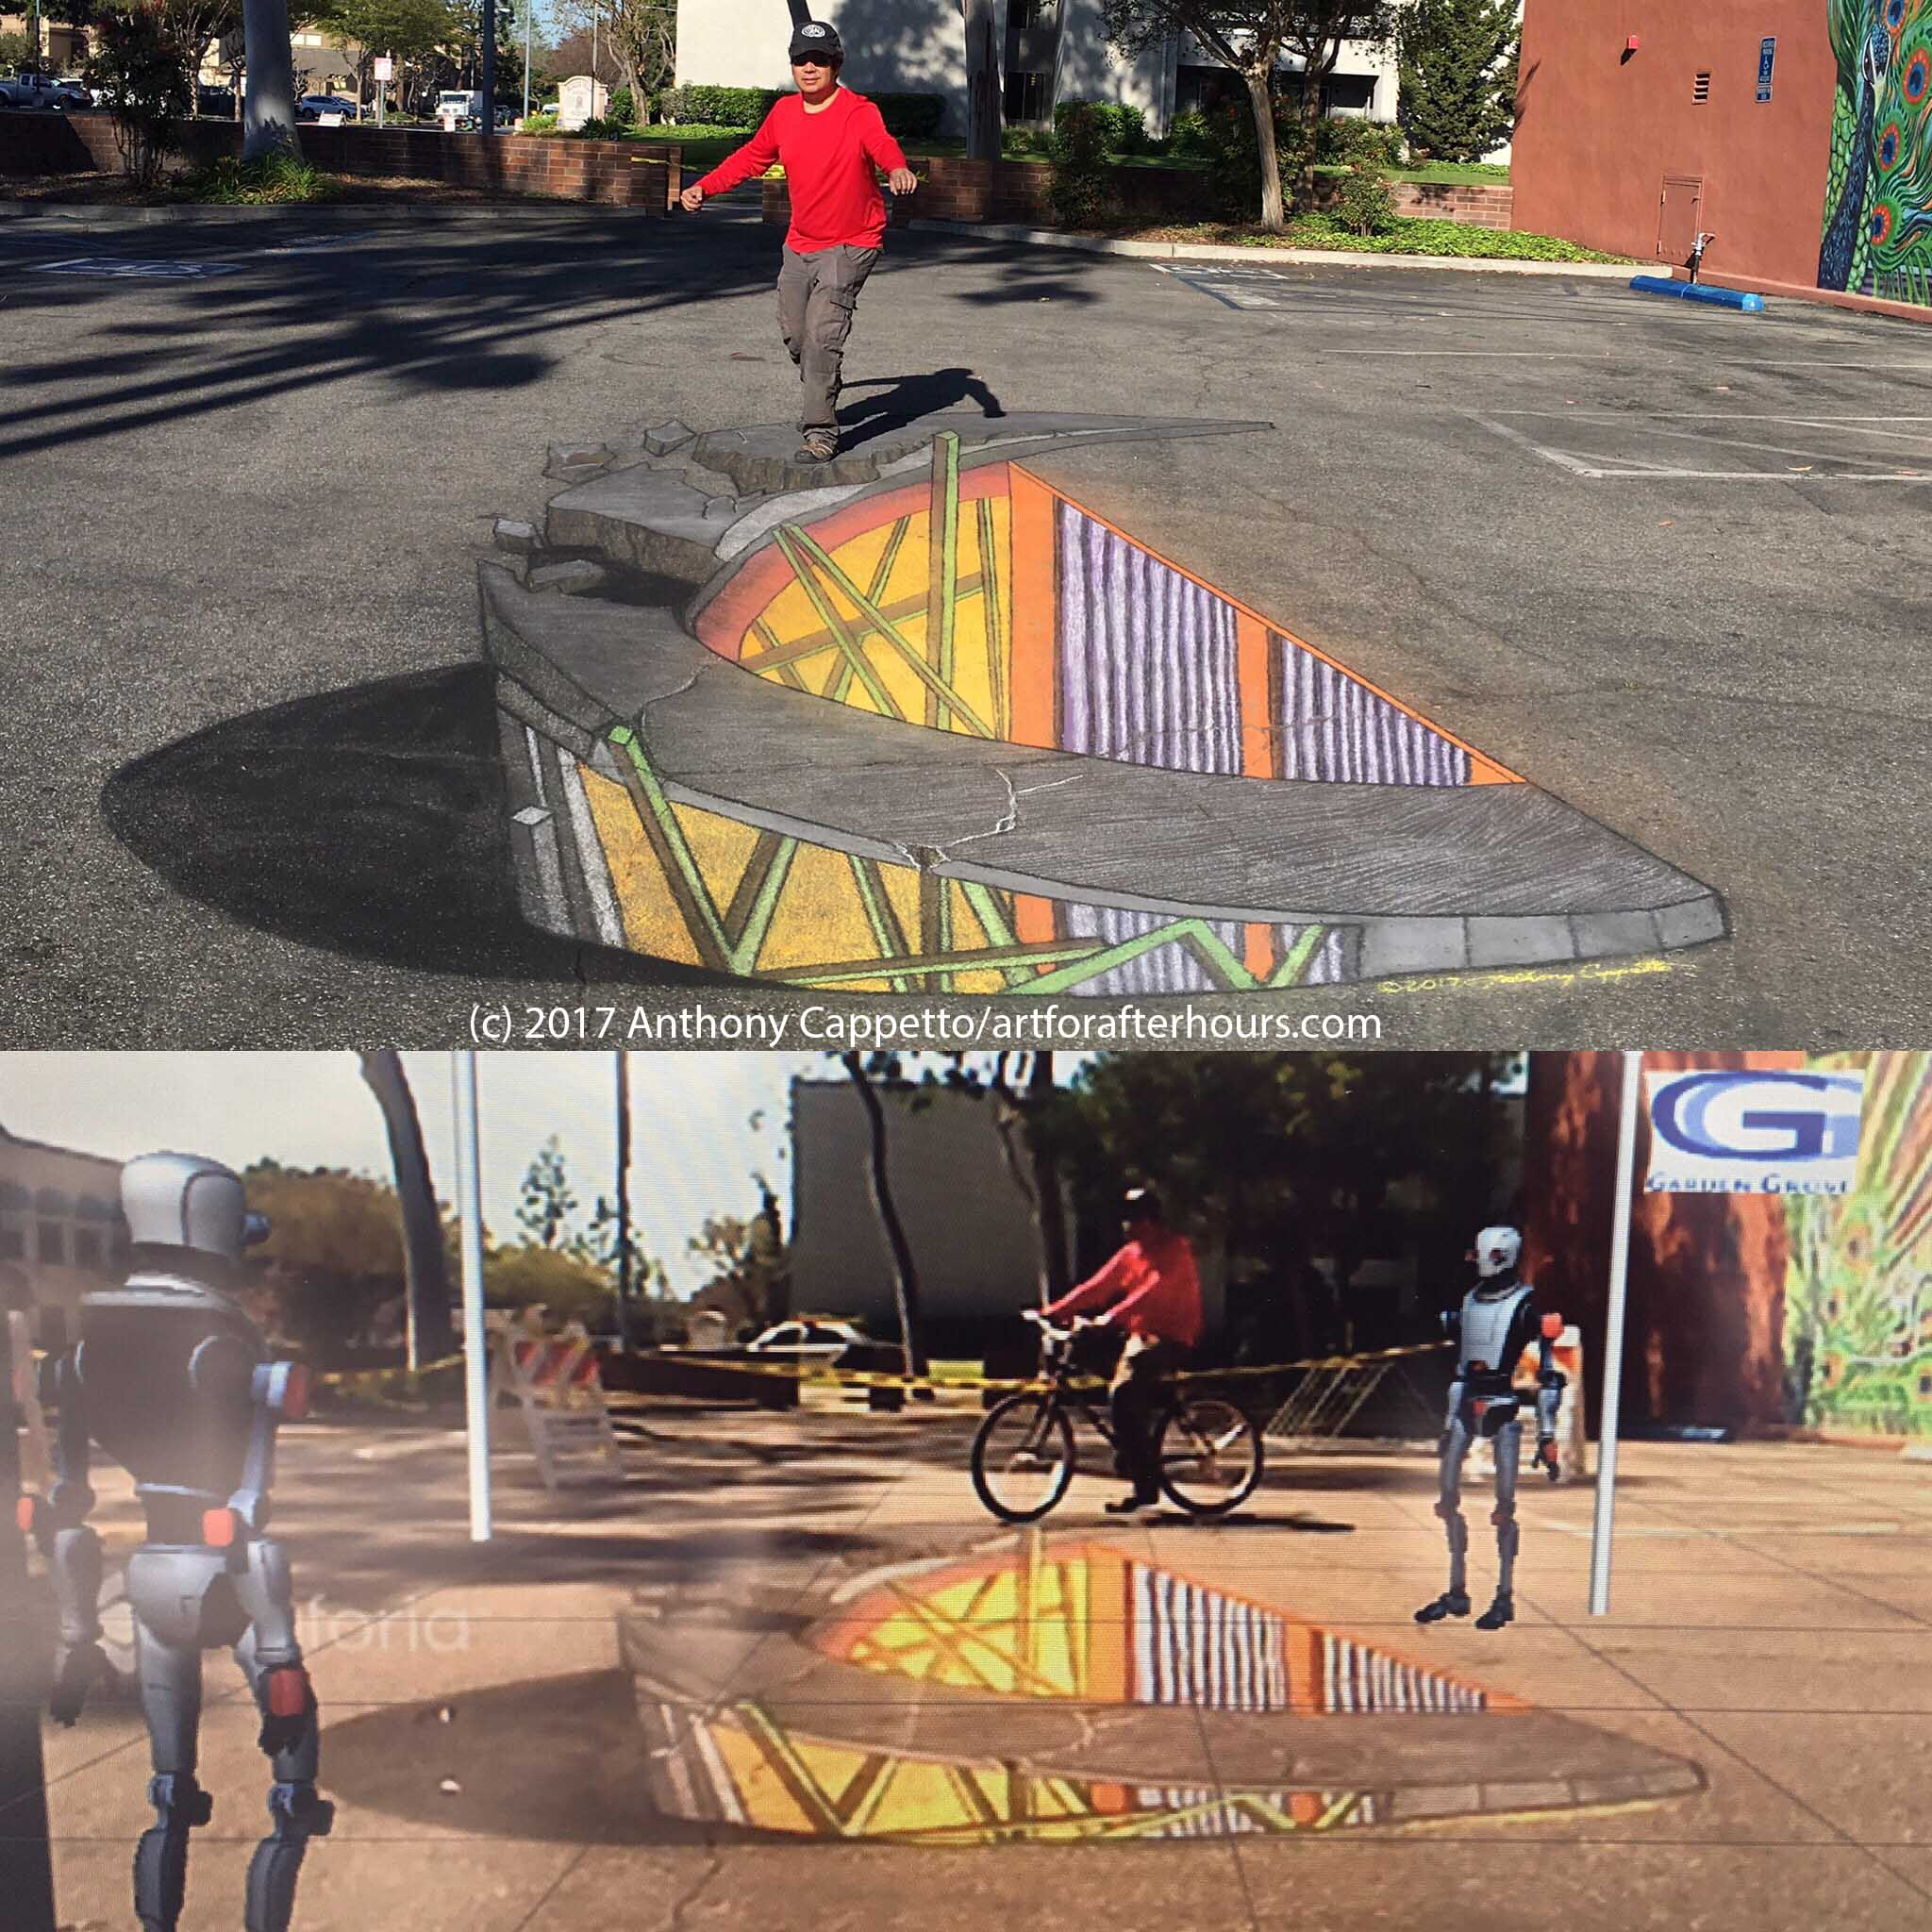 4D Immersive Street Art Installation using Augmented Reality and dry chalk street painting - Garden Grove, CA